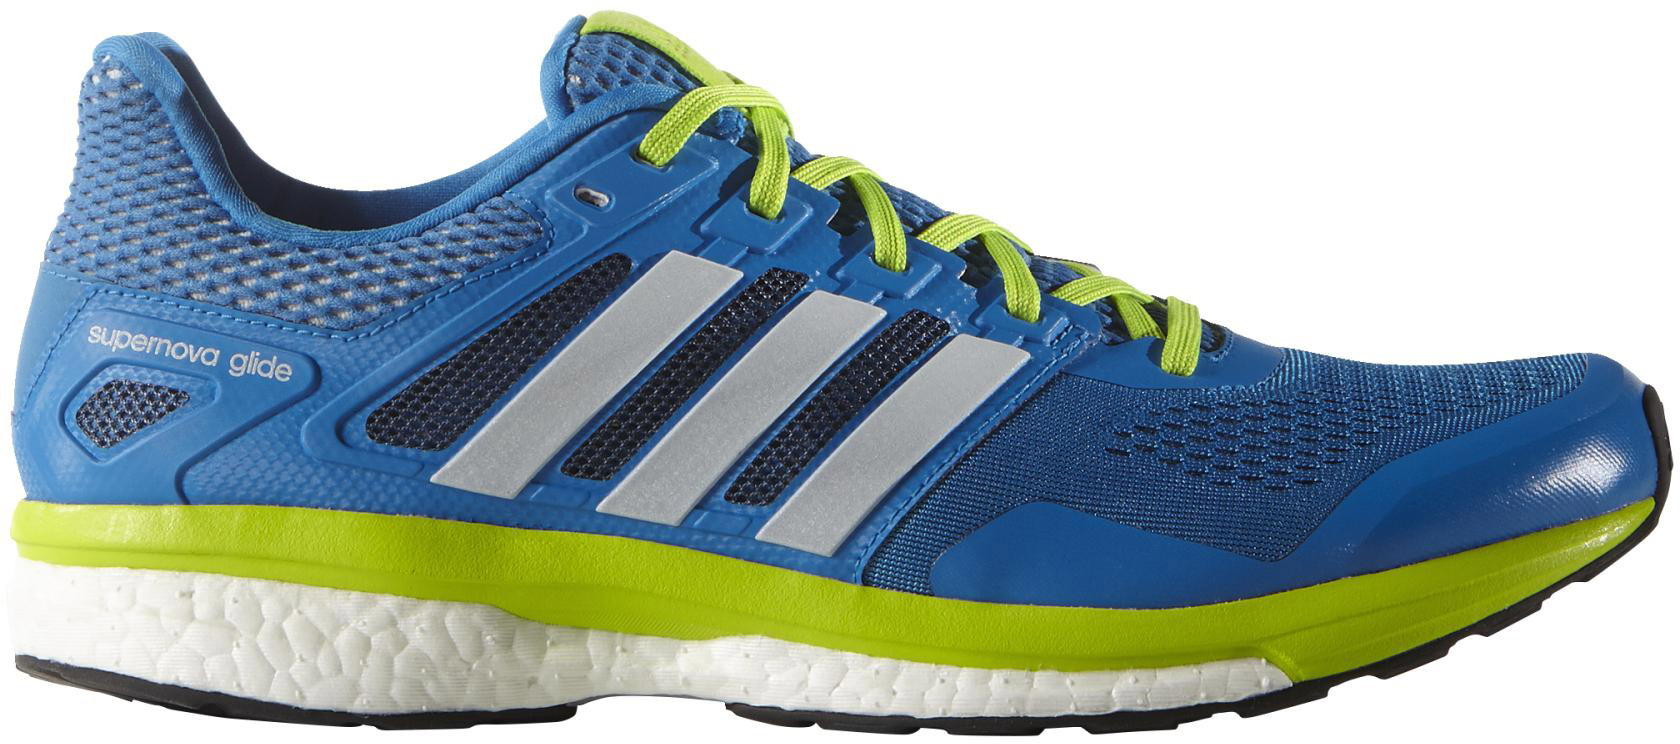 e9a13999a905b adidas SUPERNOVA GLIDE 8 CHILL M. Men s running shoes